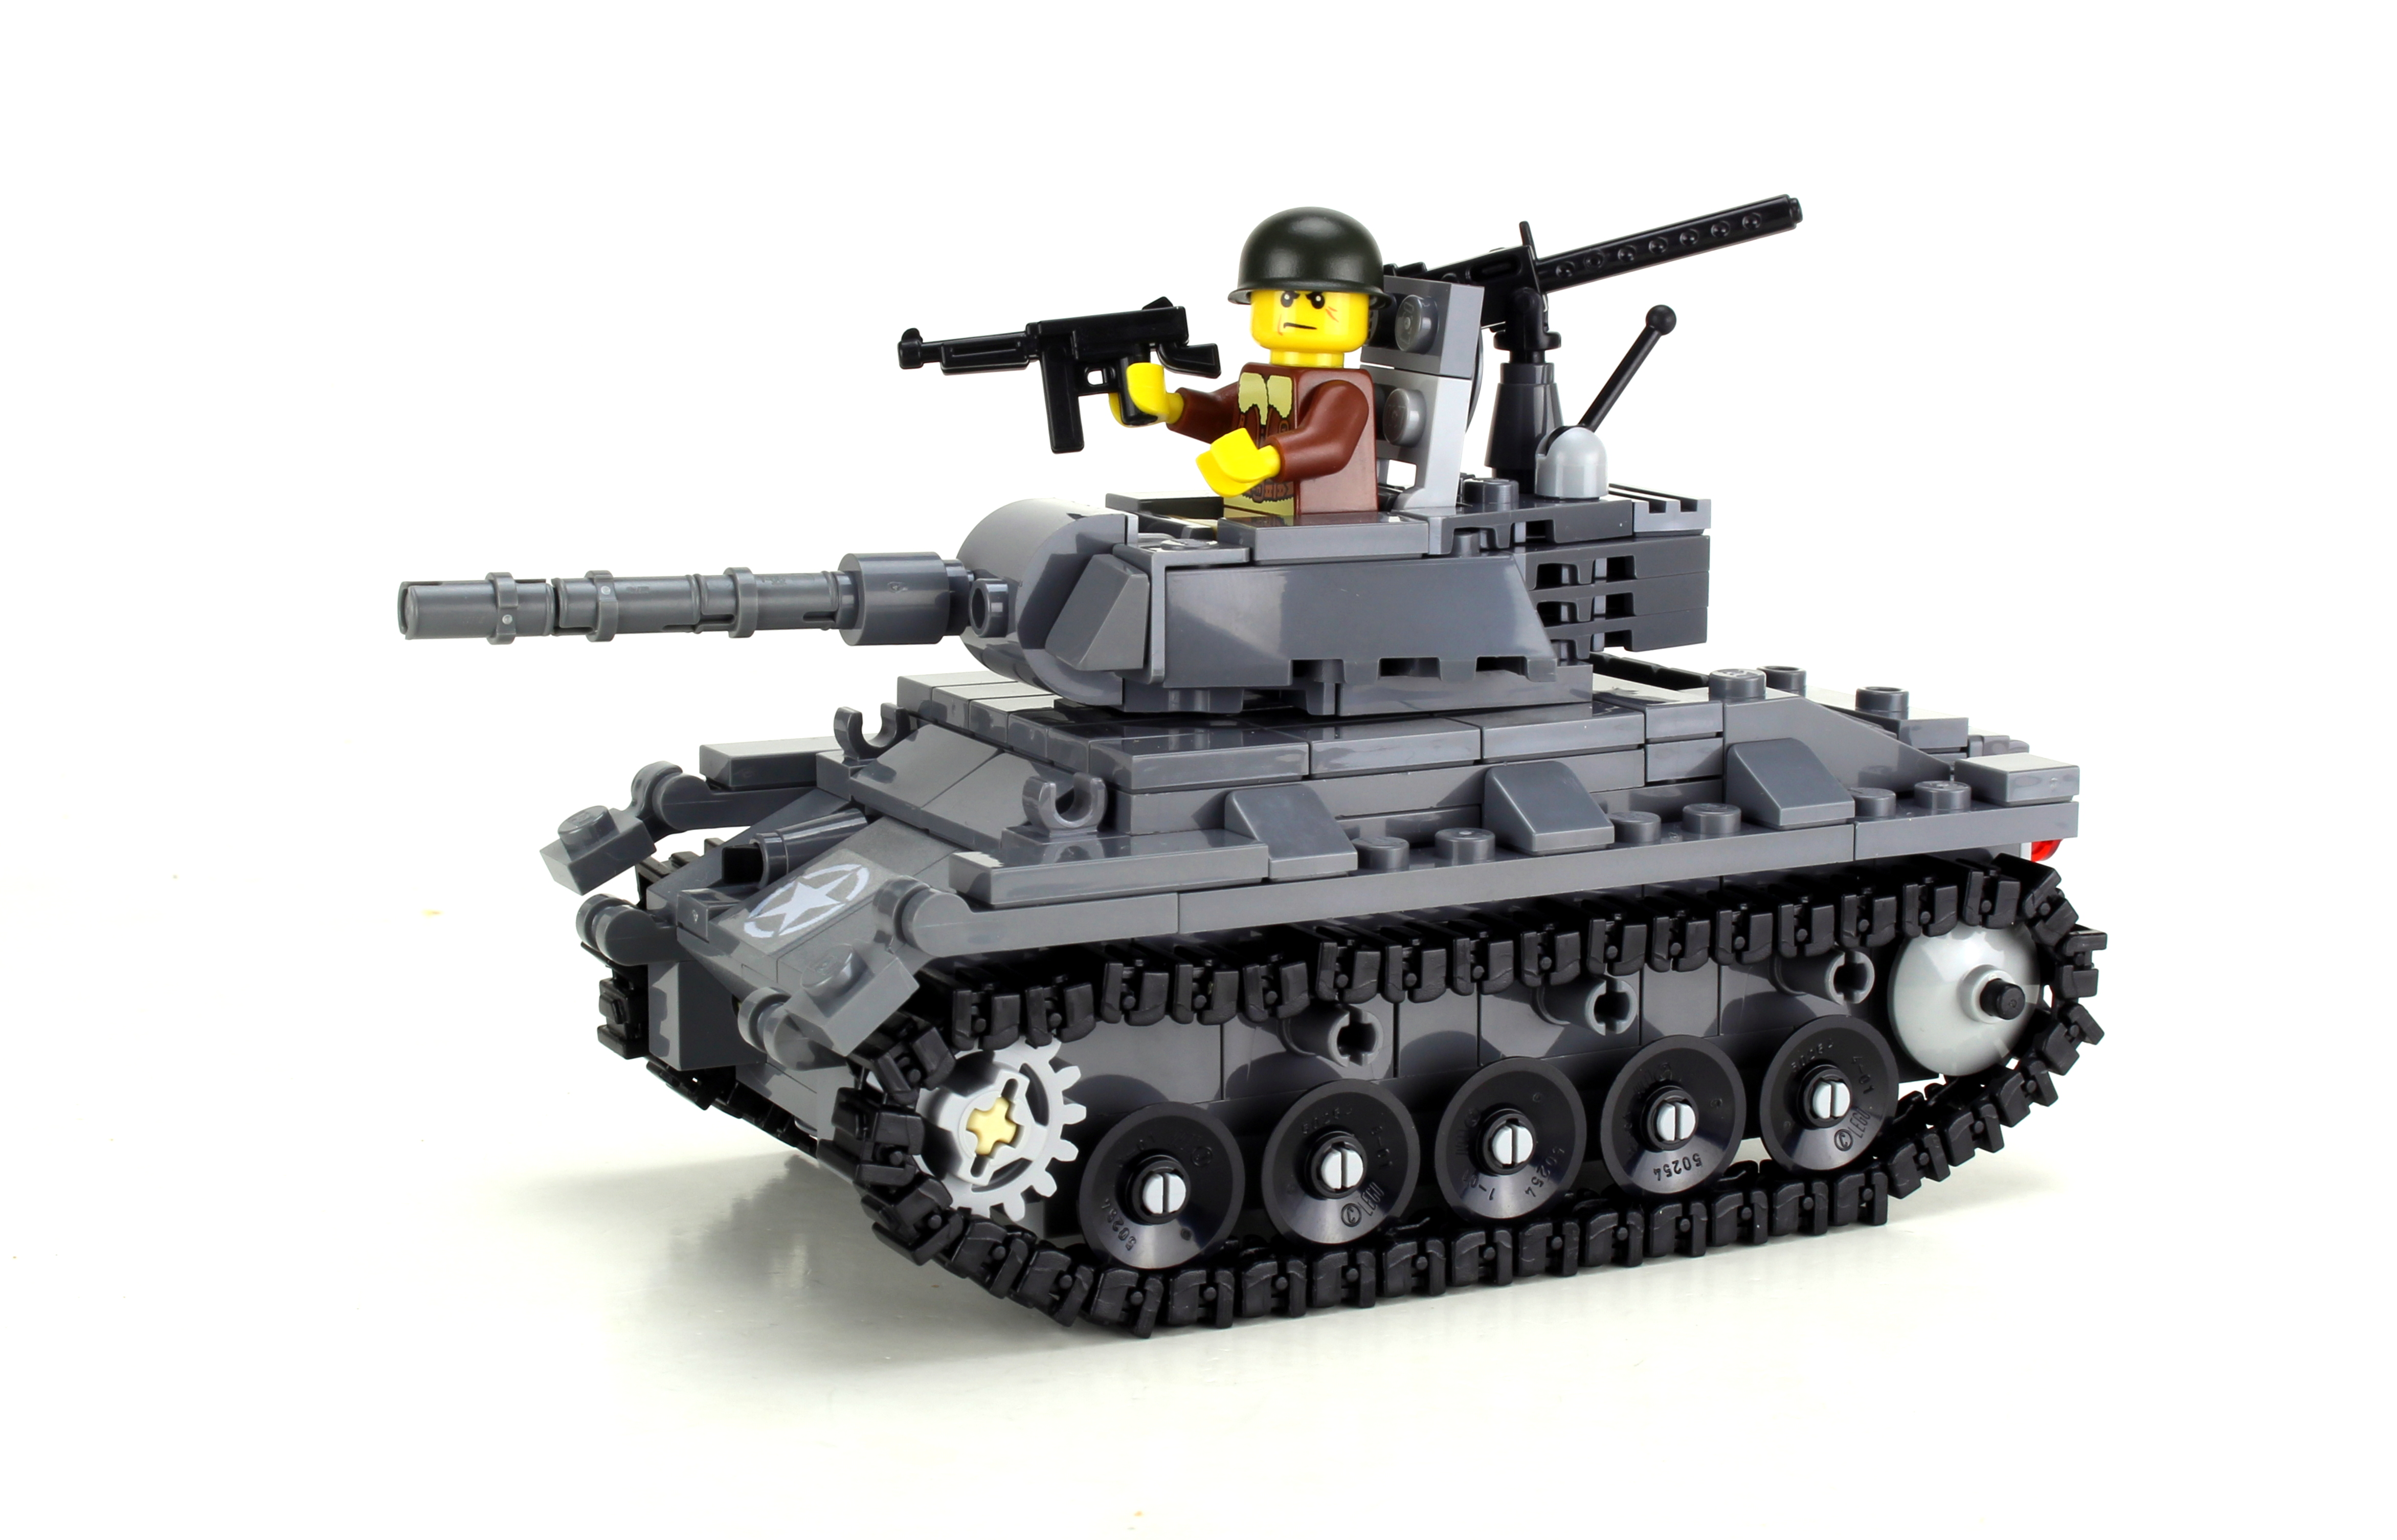 US Army Chaffee Tank World War 2